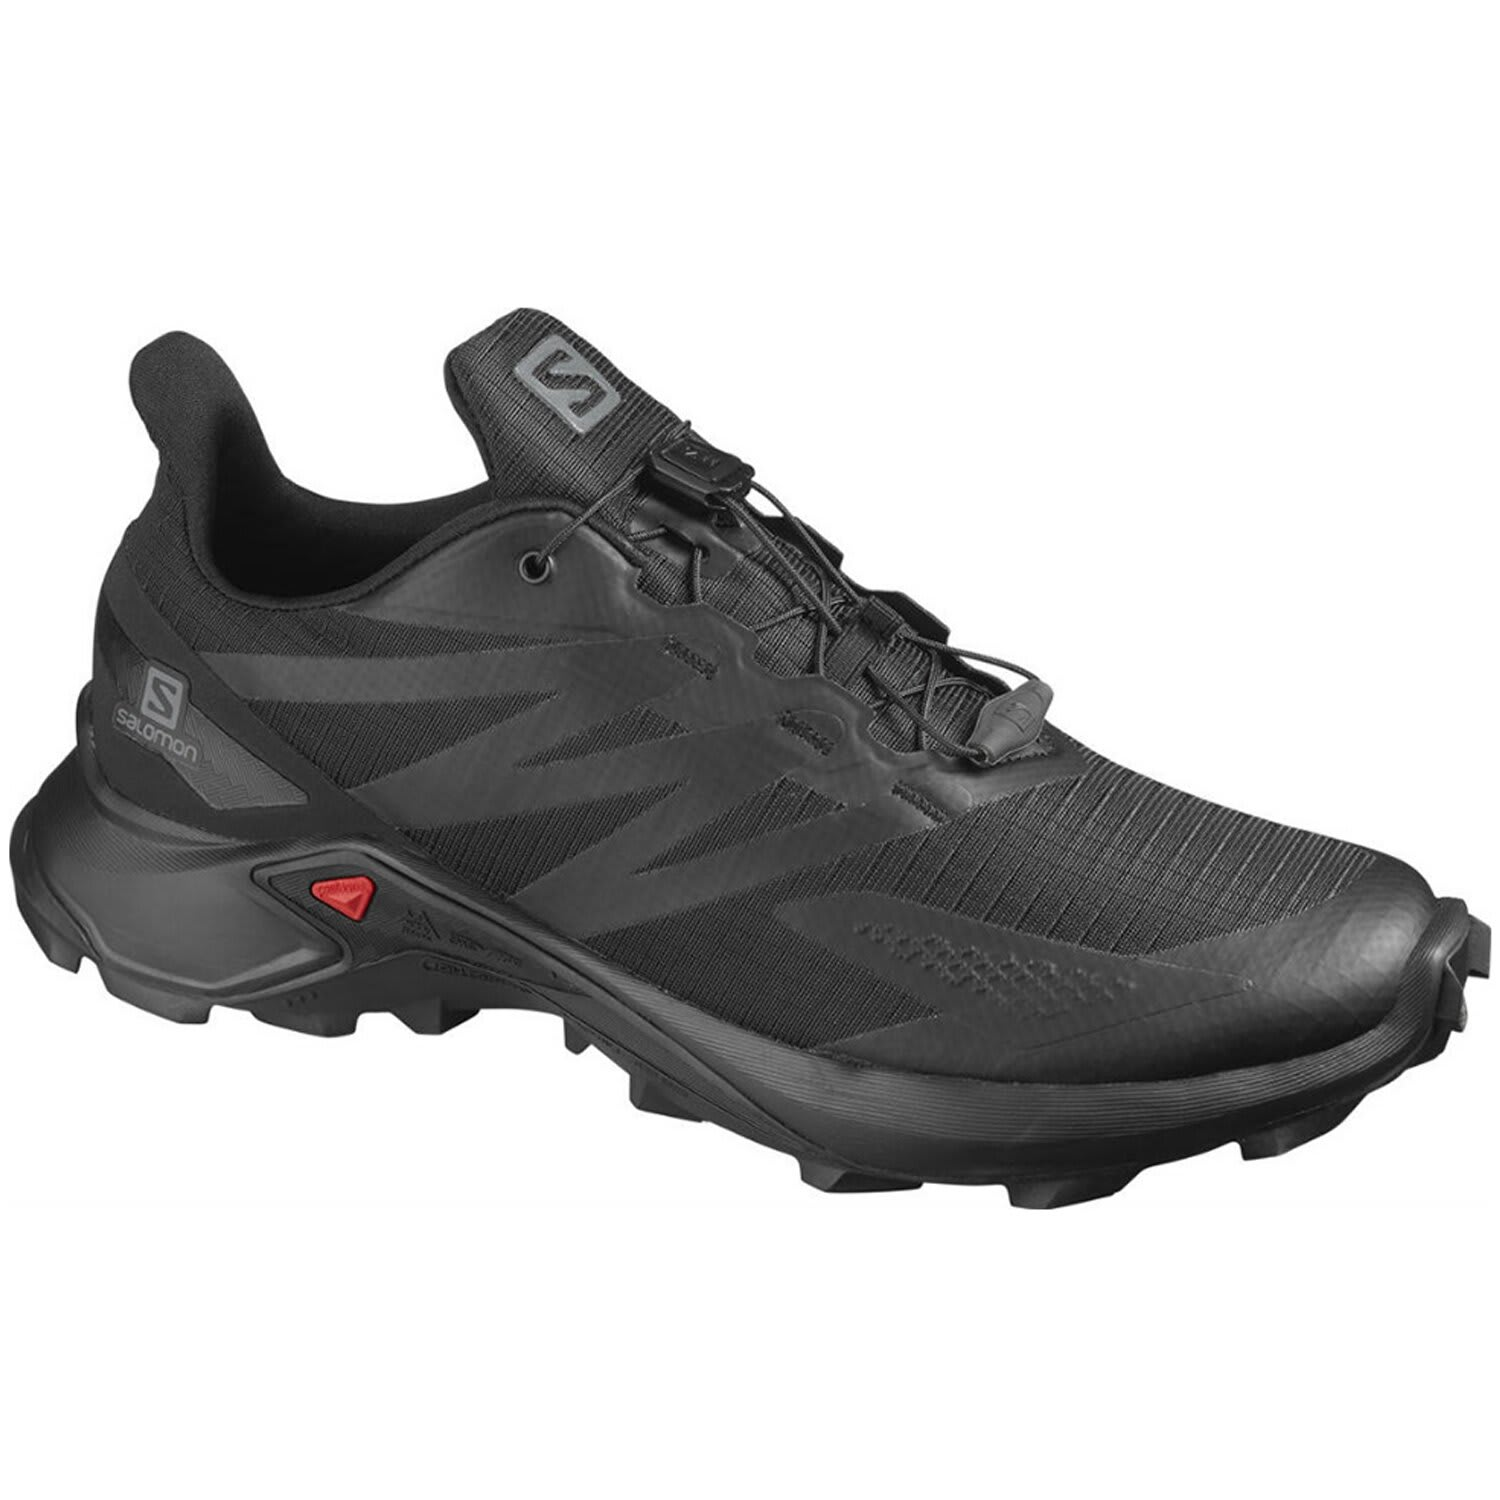 Salomon SUPERCROSS Men's